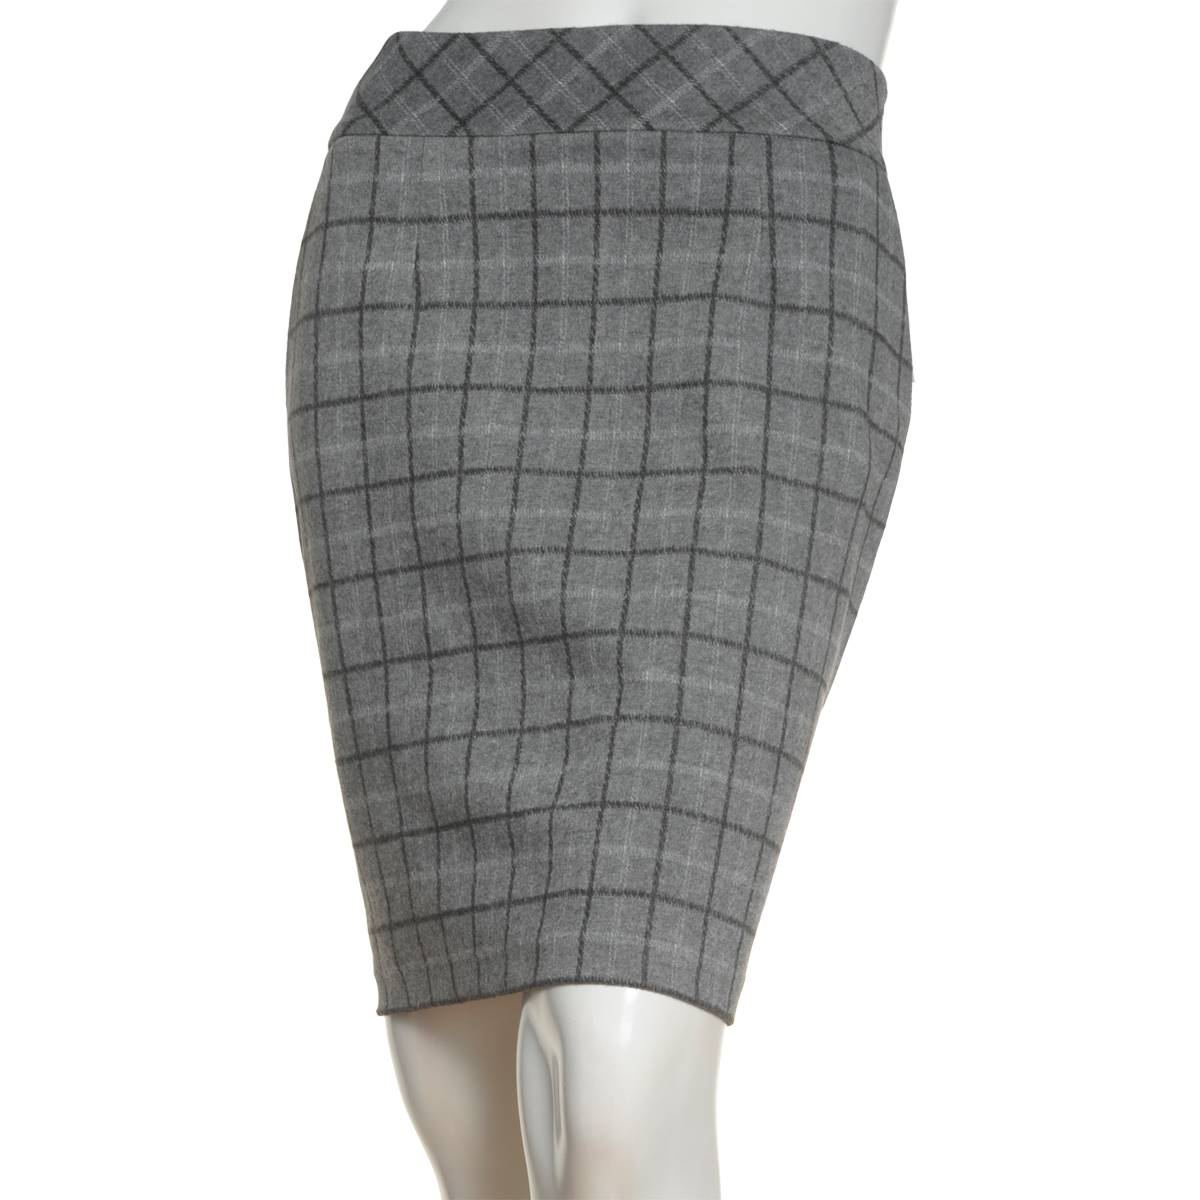 https://www.boscovs.com/shop/prod/architect-grey-multi-plaid-print-double-knit-skirt/636338.htm